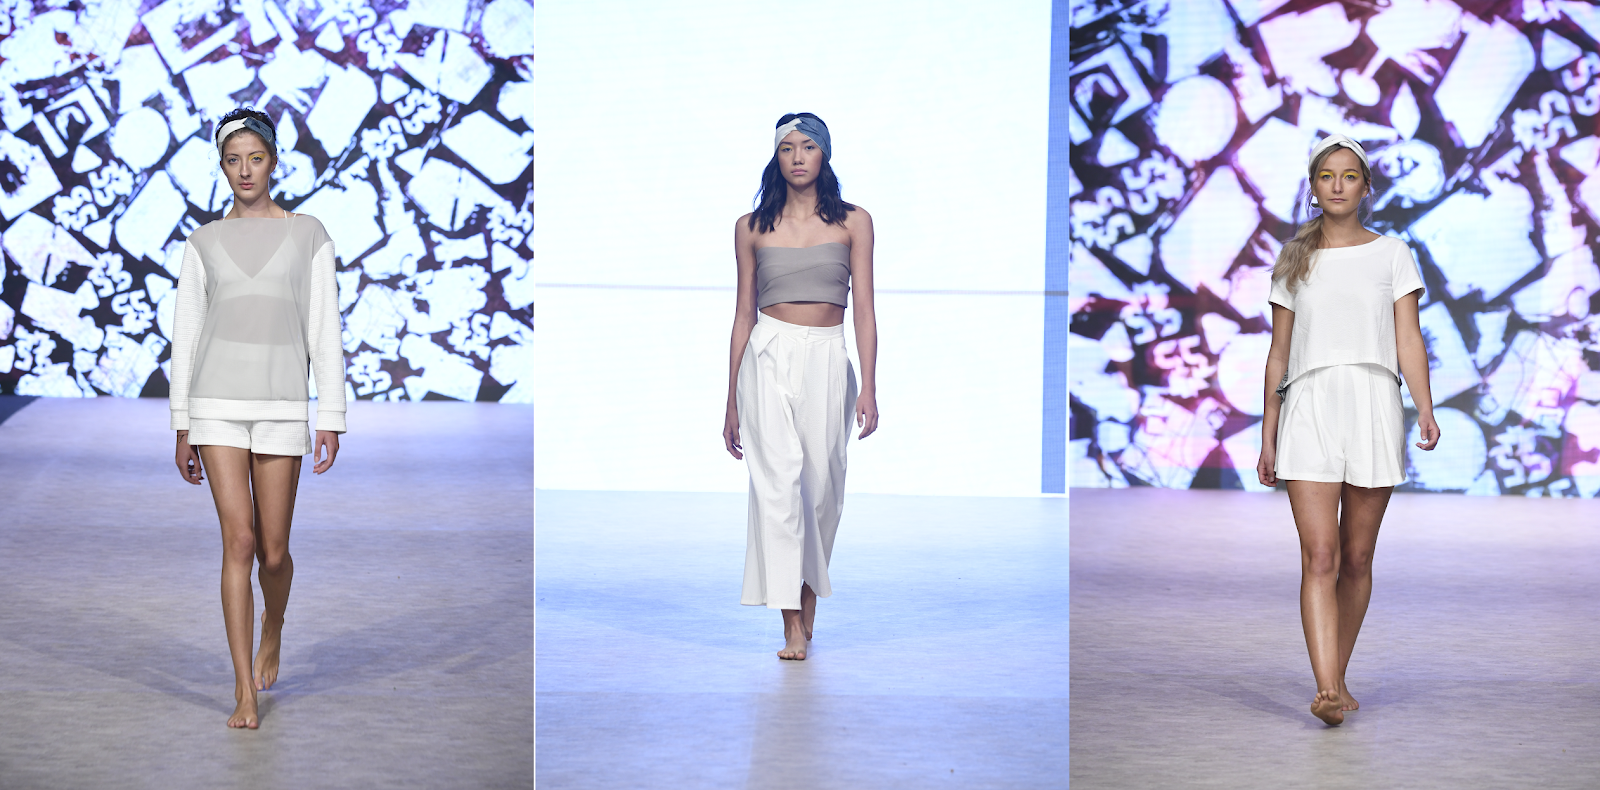 Vancouver Fashion Week S S19 Interview With Designer Lyndsey Jackson Of Phased By Lj